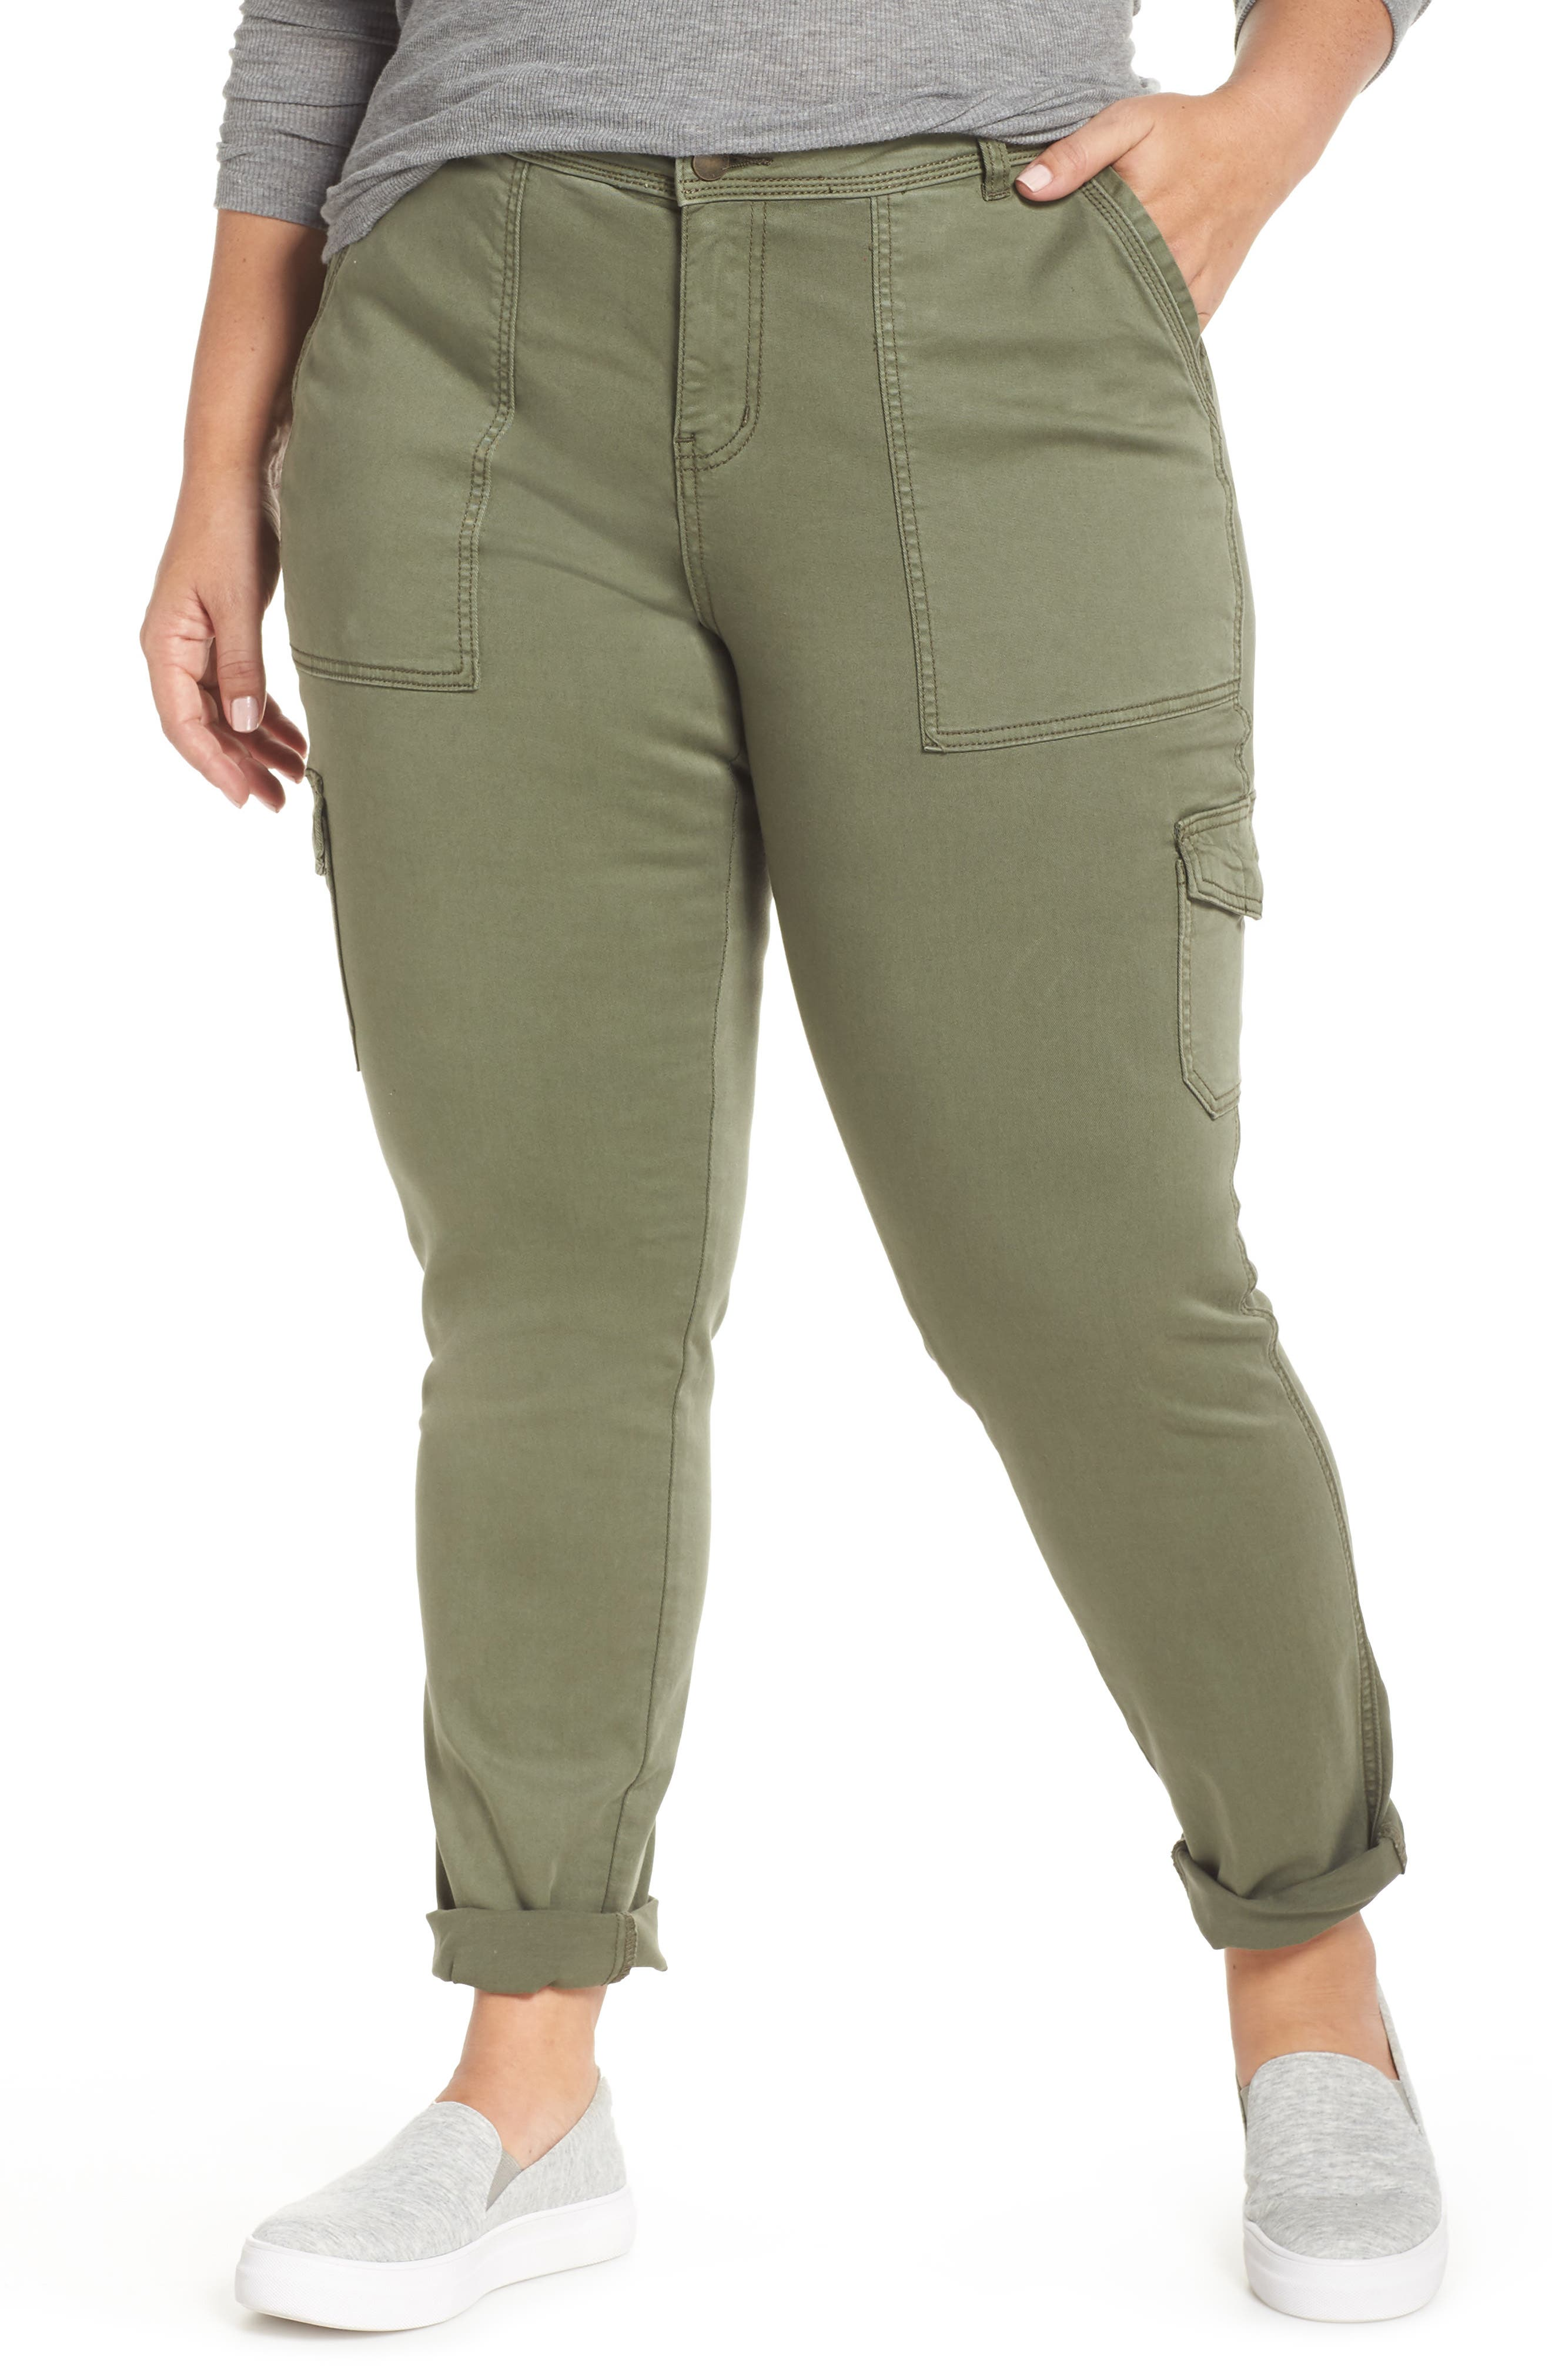 Stretch Twill Utility Pants,                             Main thumbnail 1, color,                             301